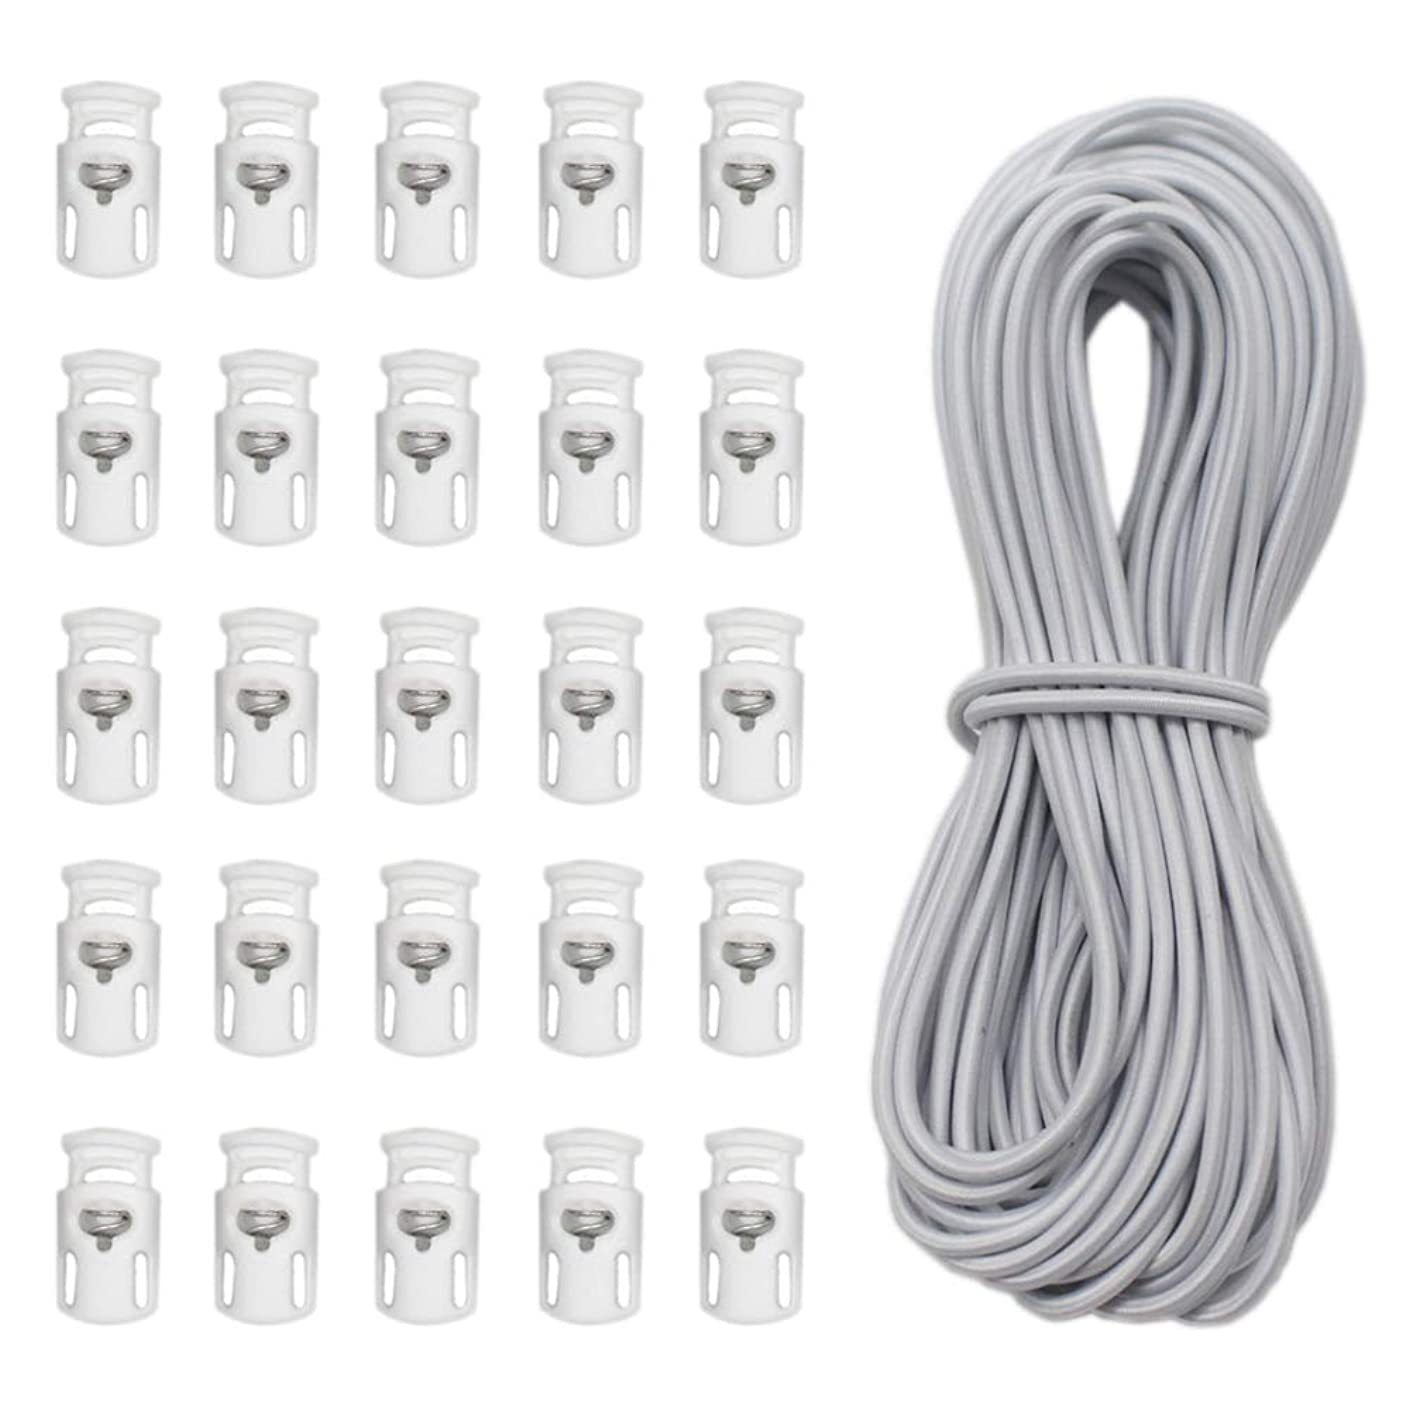 YaHoGa 25 pcs Cord Locks Spring Toggle Stopper + 10 Yards 1/8 Inch Cord Stretch String for Drawstring, Shoelaces, Clothing, Backpack, Bags (White)